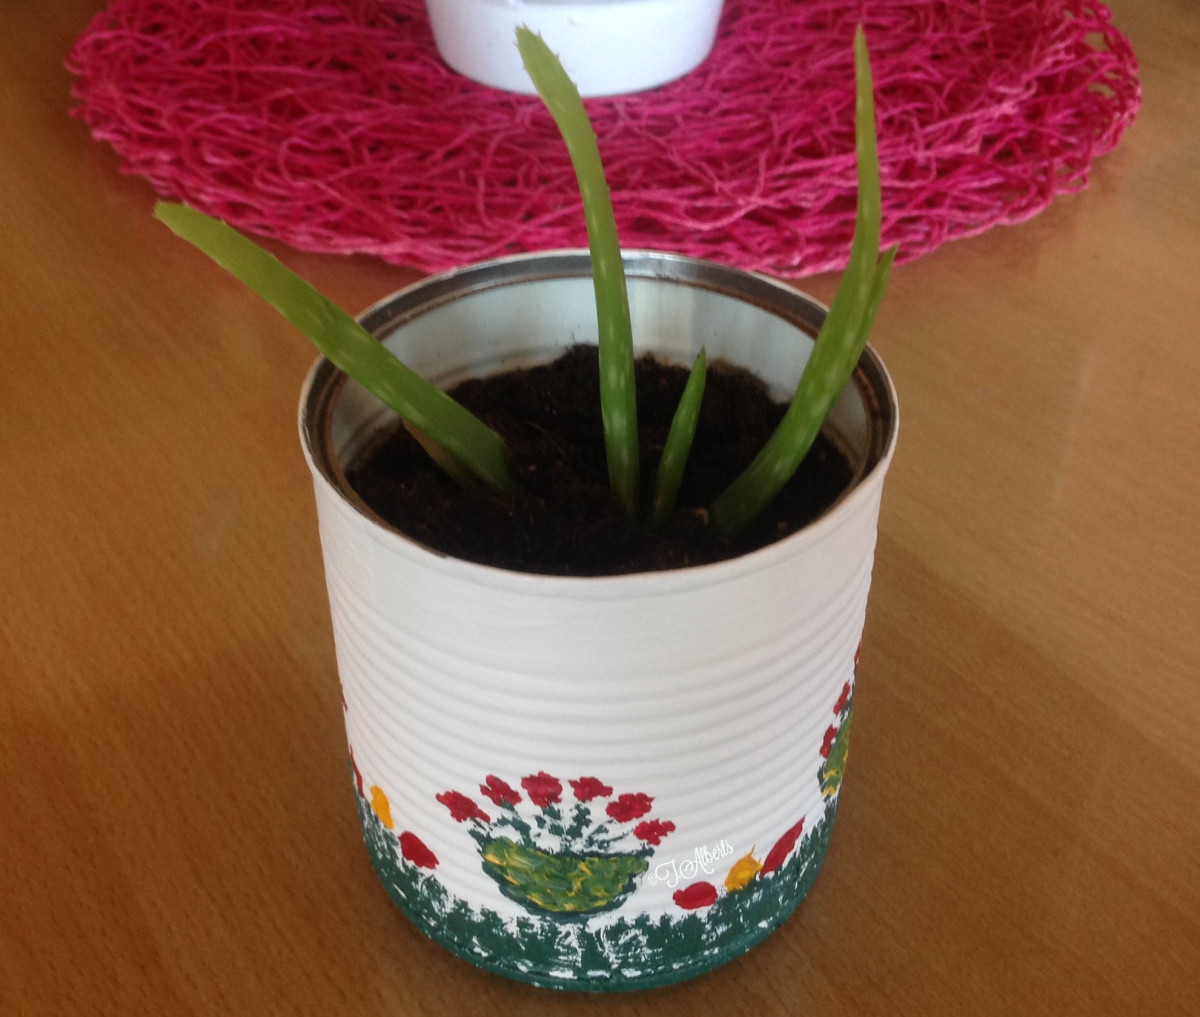 I planted aloe vera plants in my finished recycled food can.